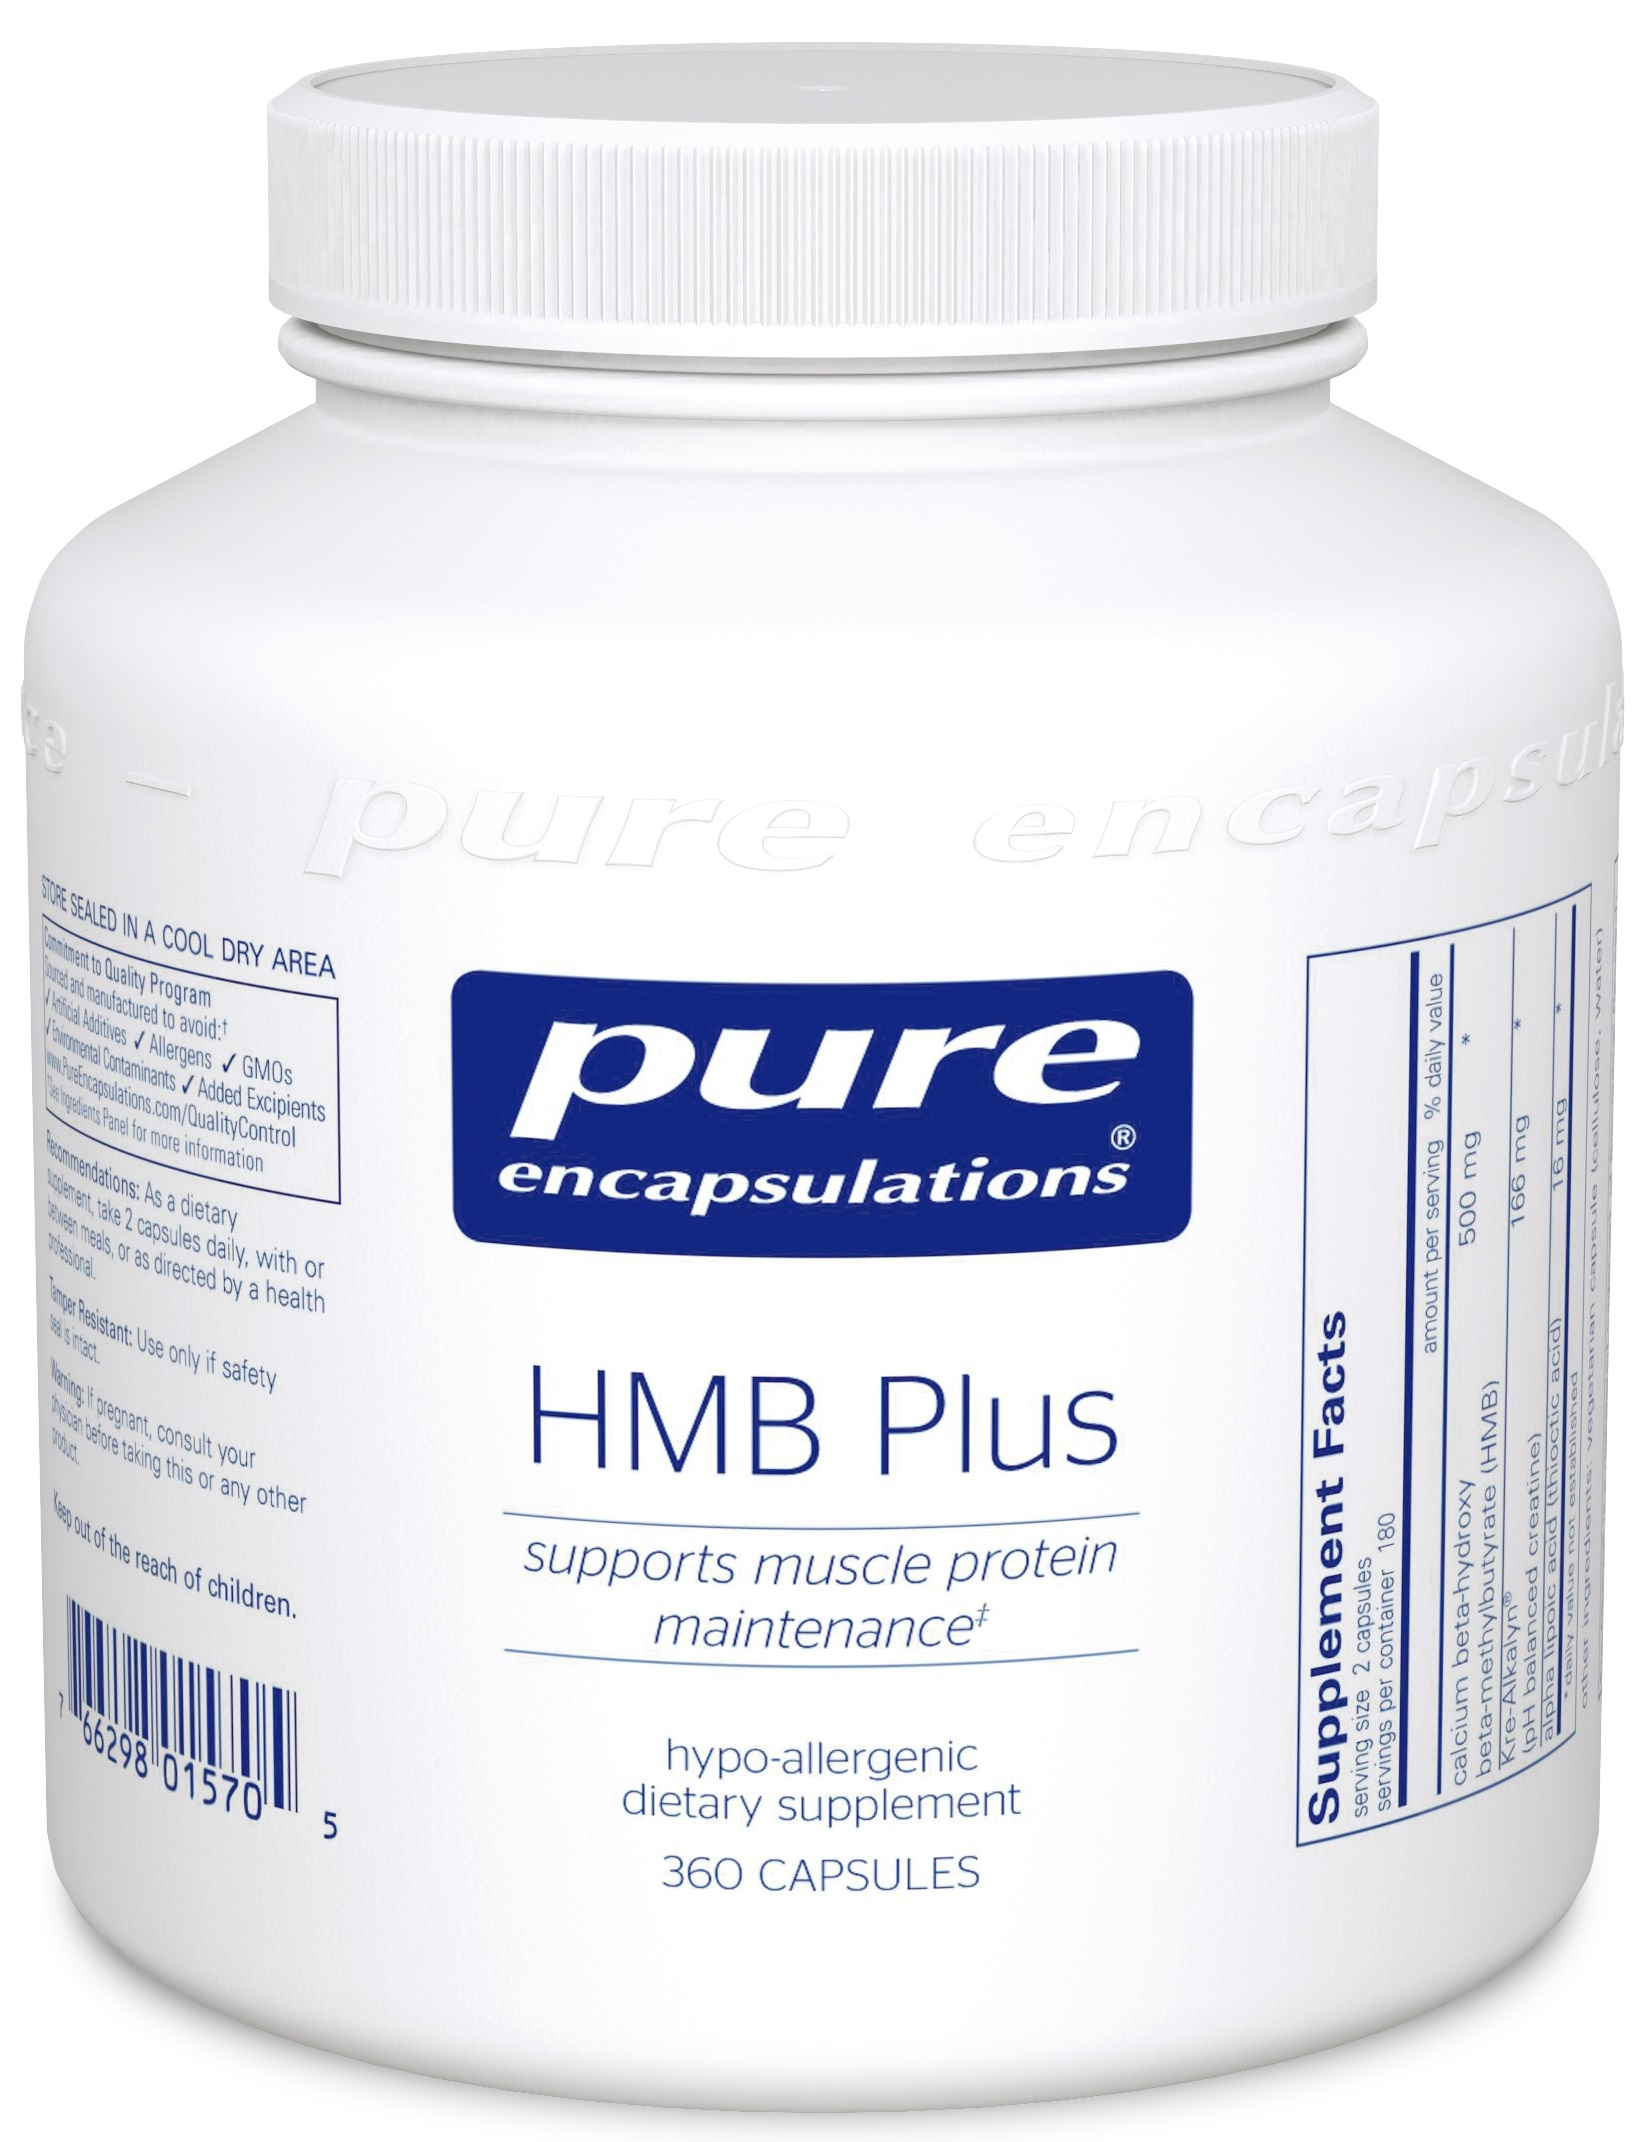 Pure Encapsulations HMB Plus